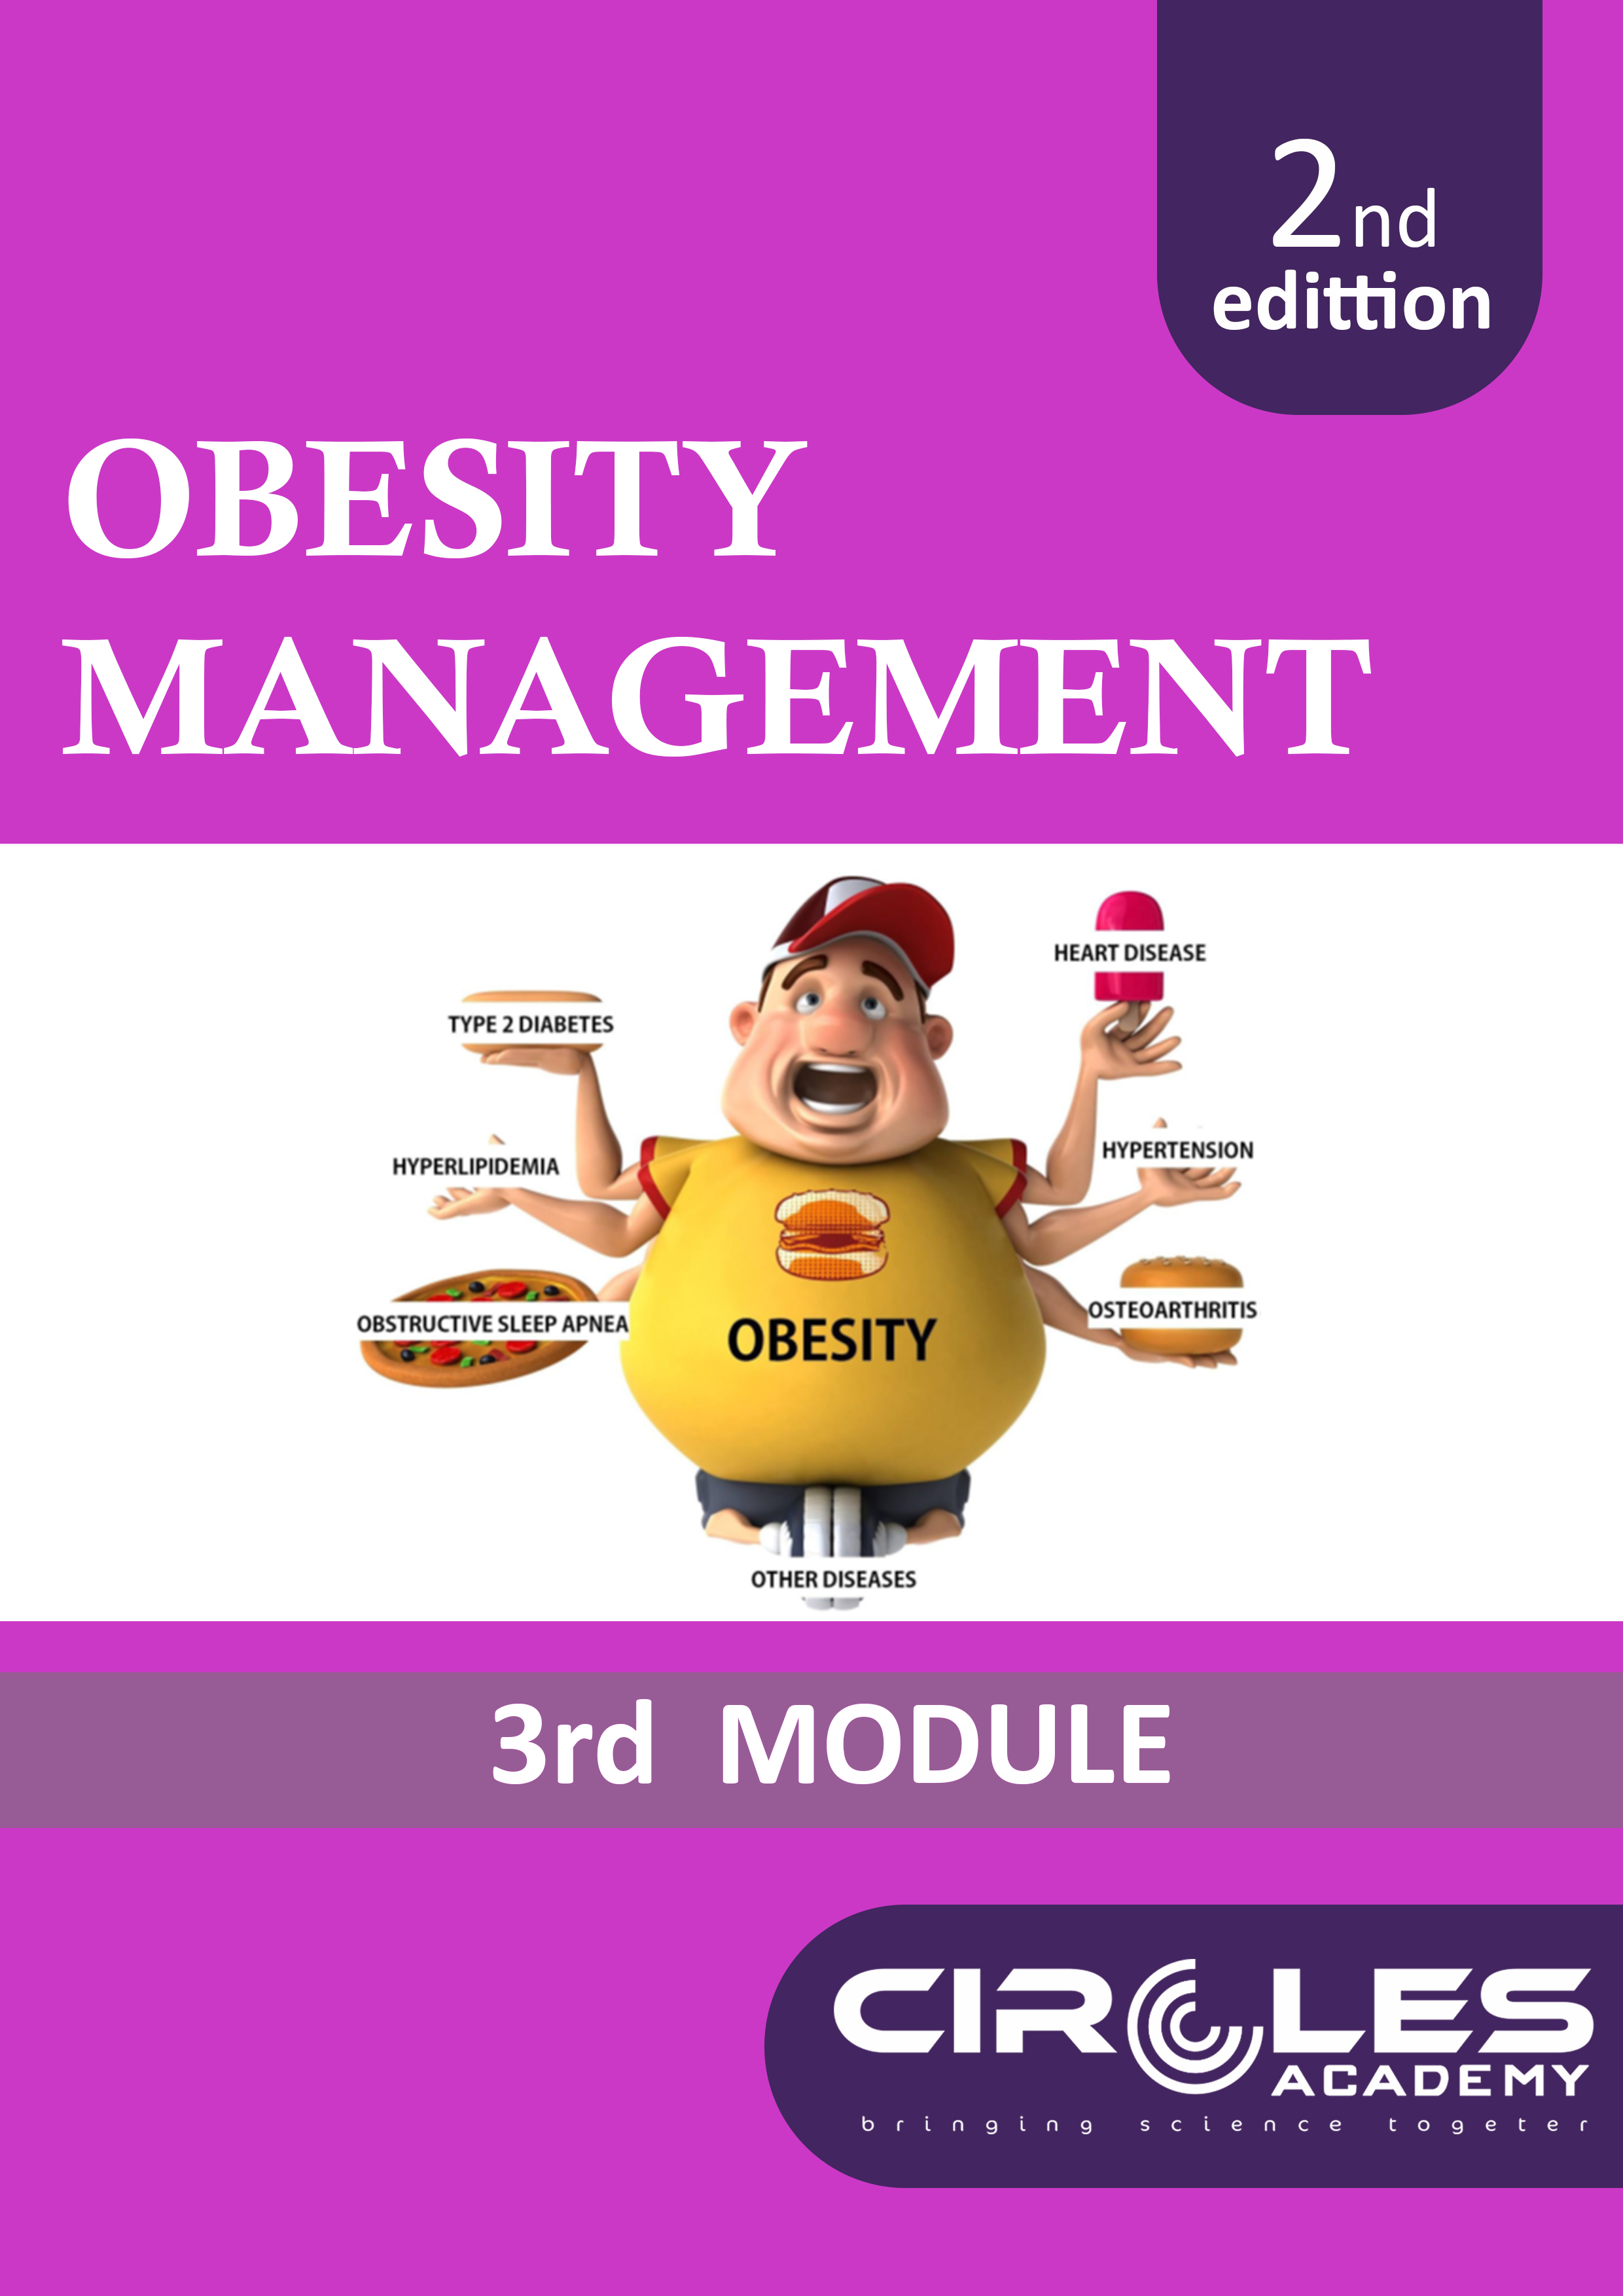 3rd module, obesity causes and management